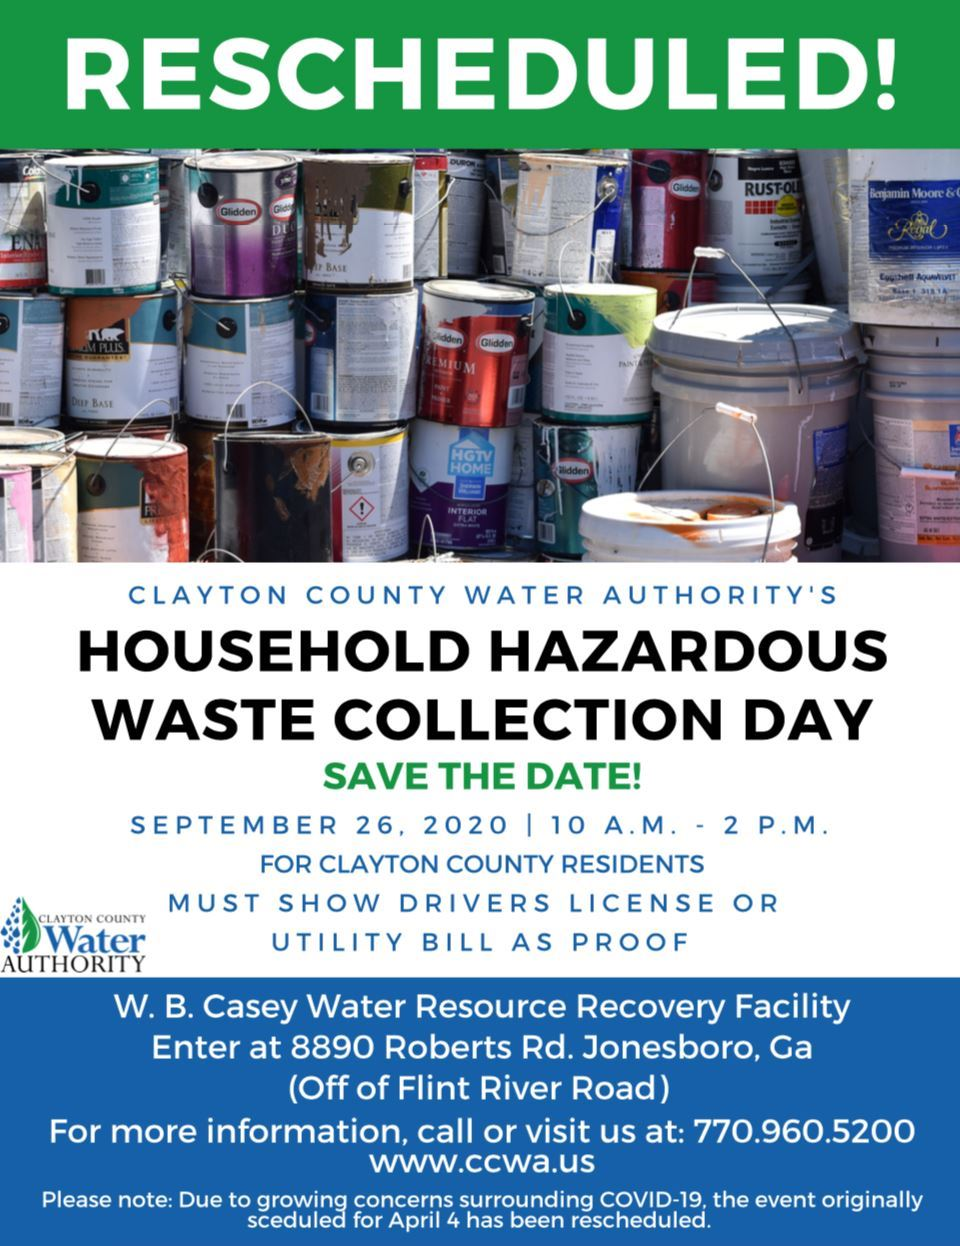 Household hazardous waste collection day